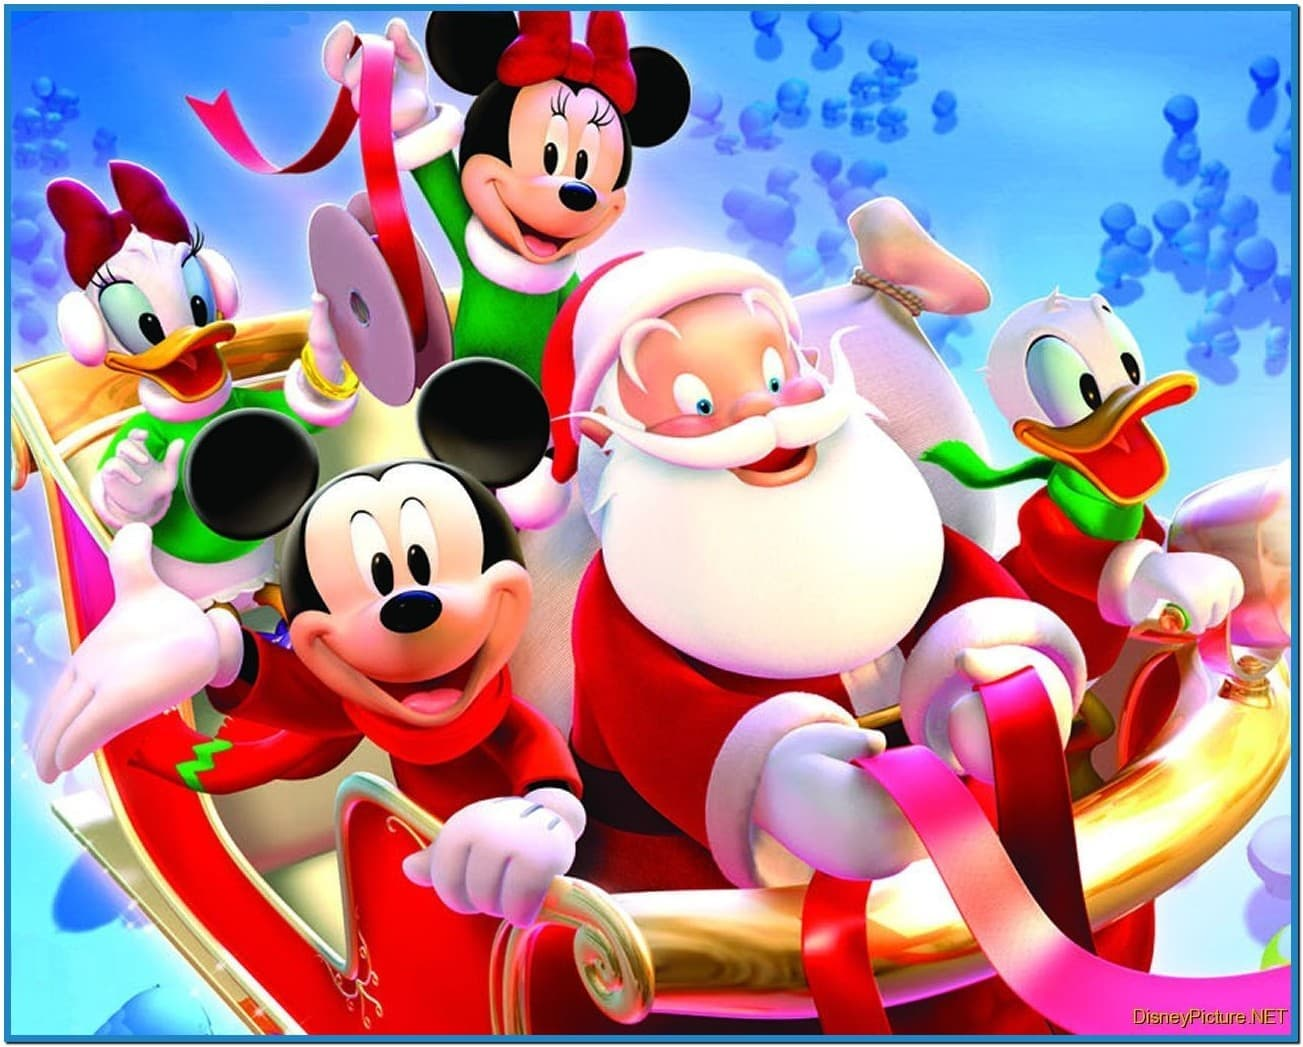 Disney christmas wallpaper and screensavers Download 1303x1047